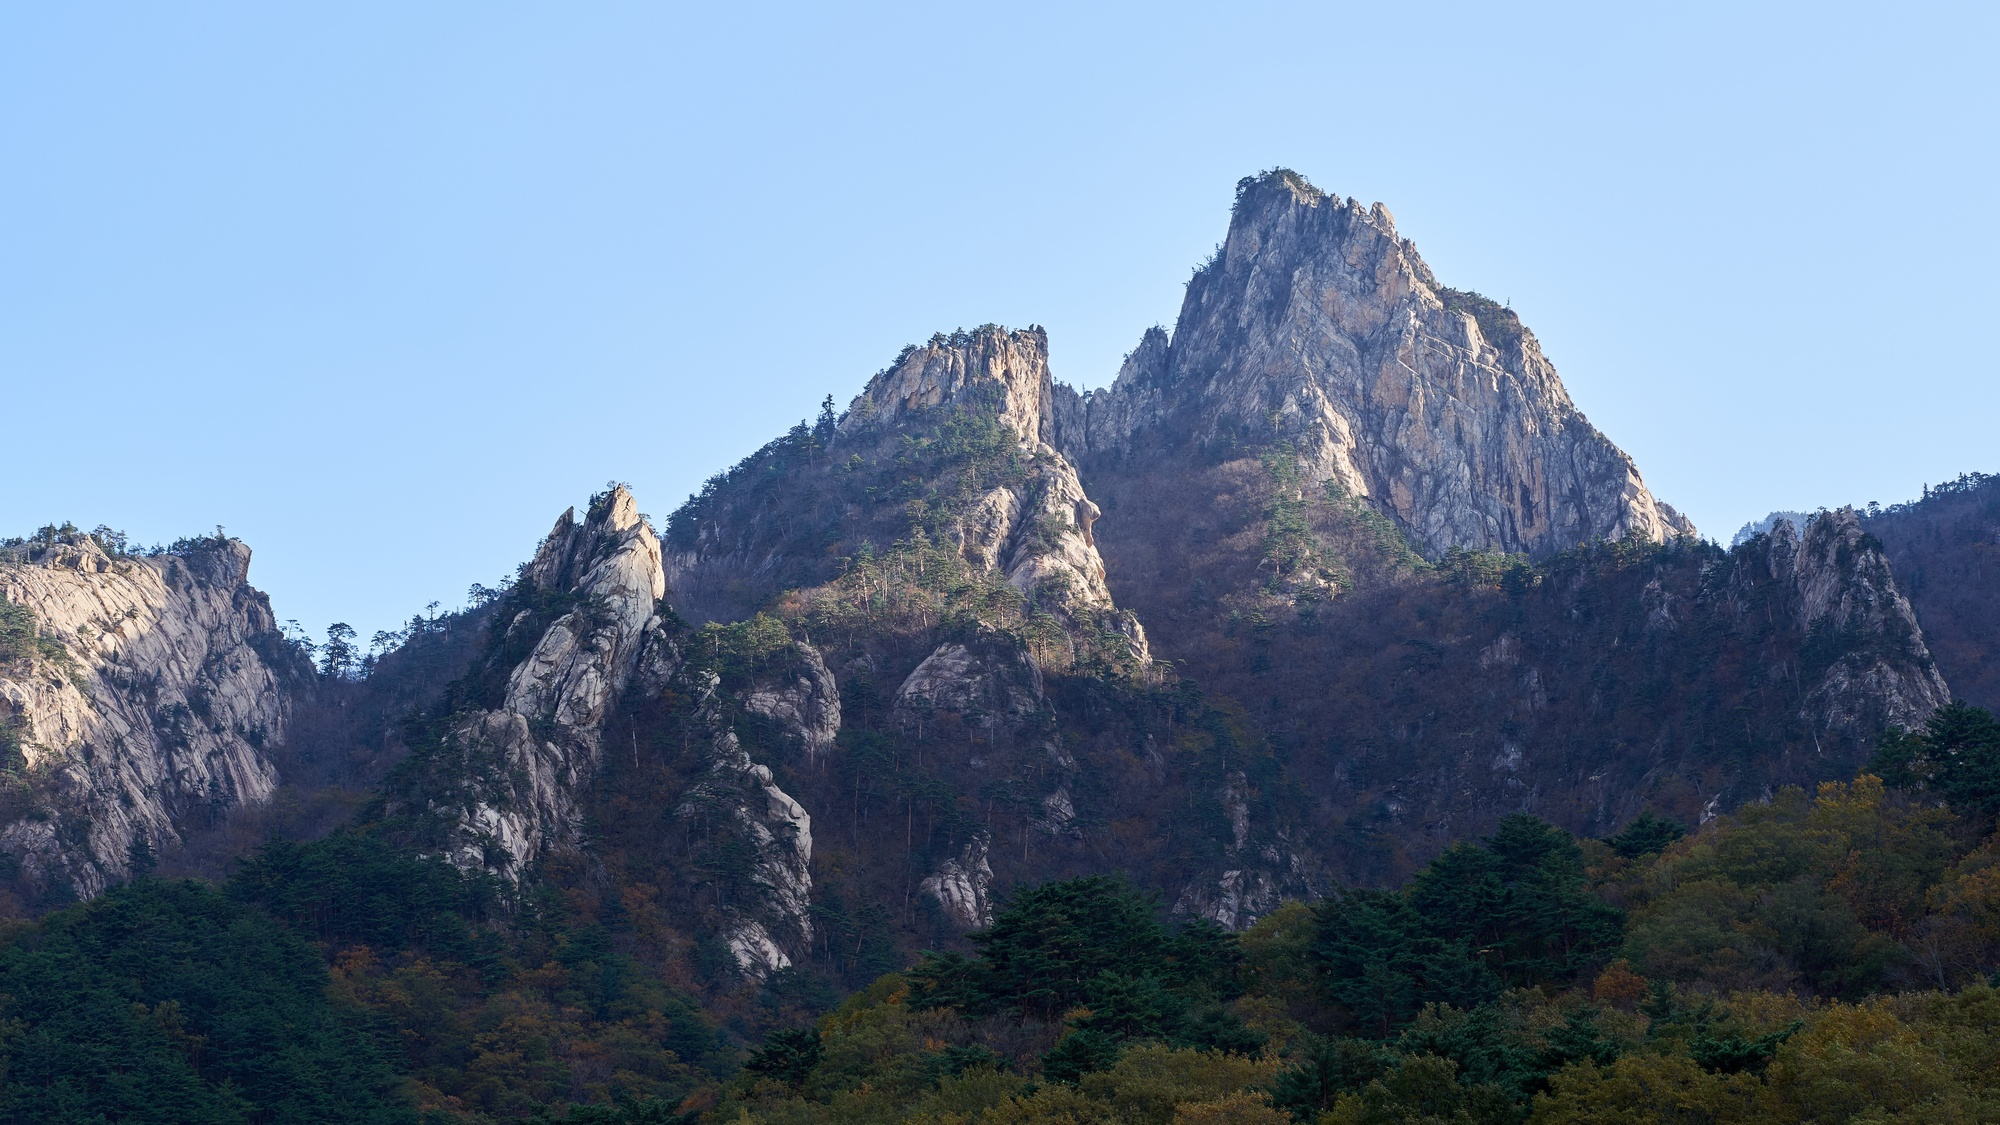 Taebaek Mountain Range Seoraksan National Park